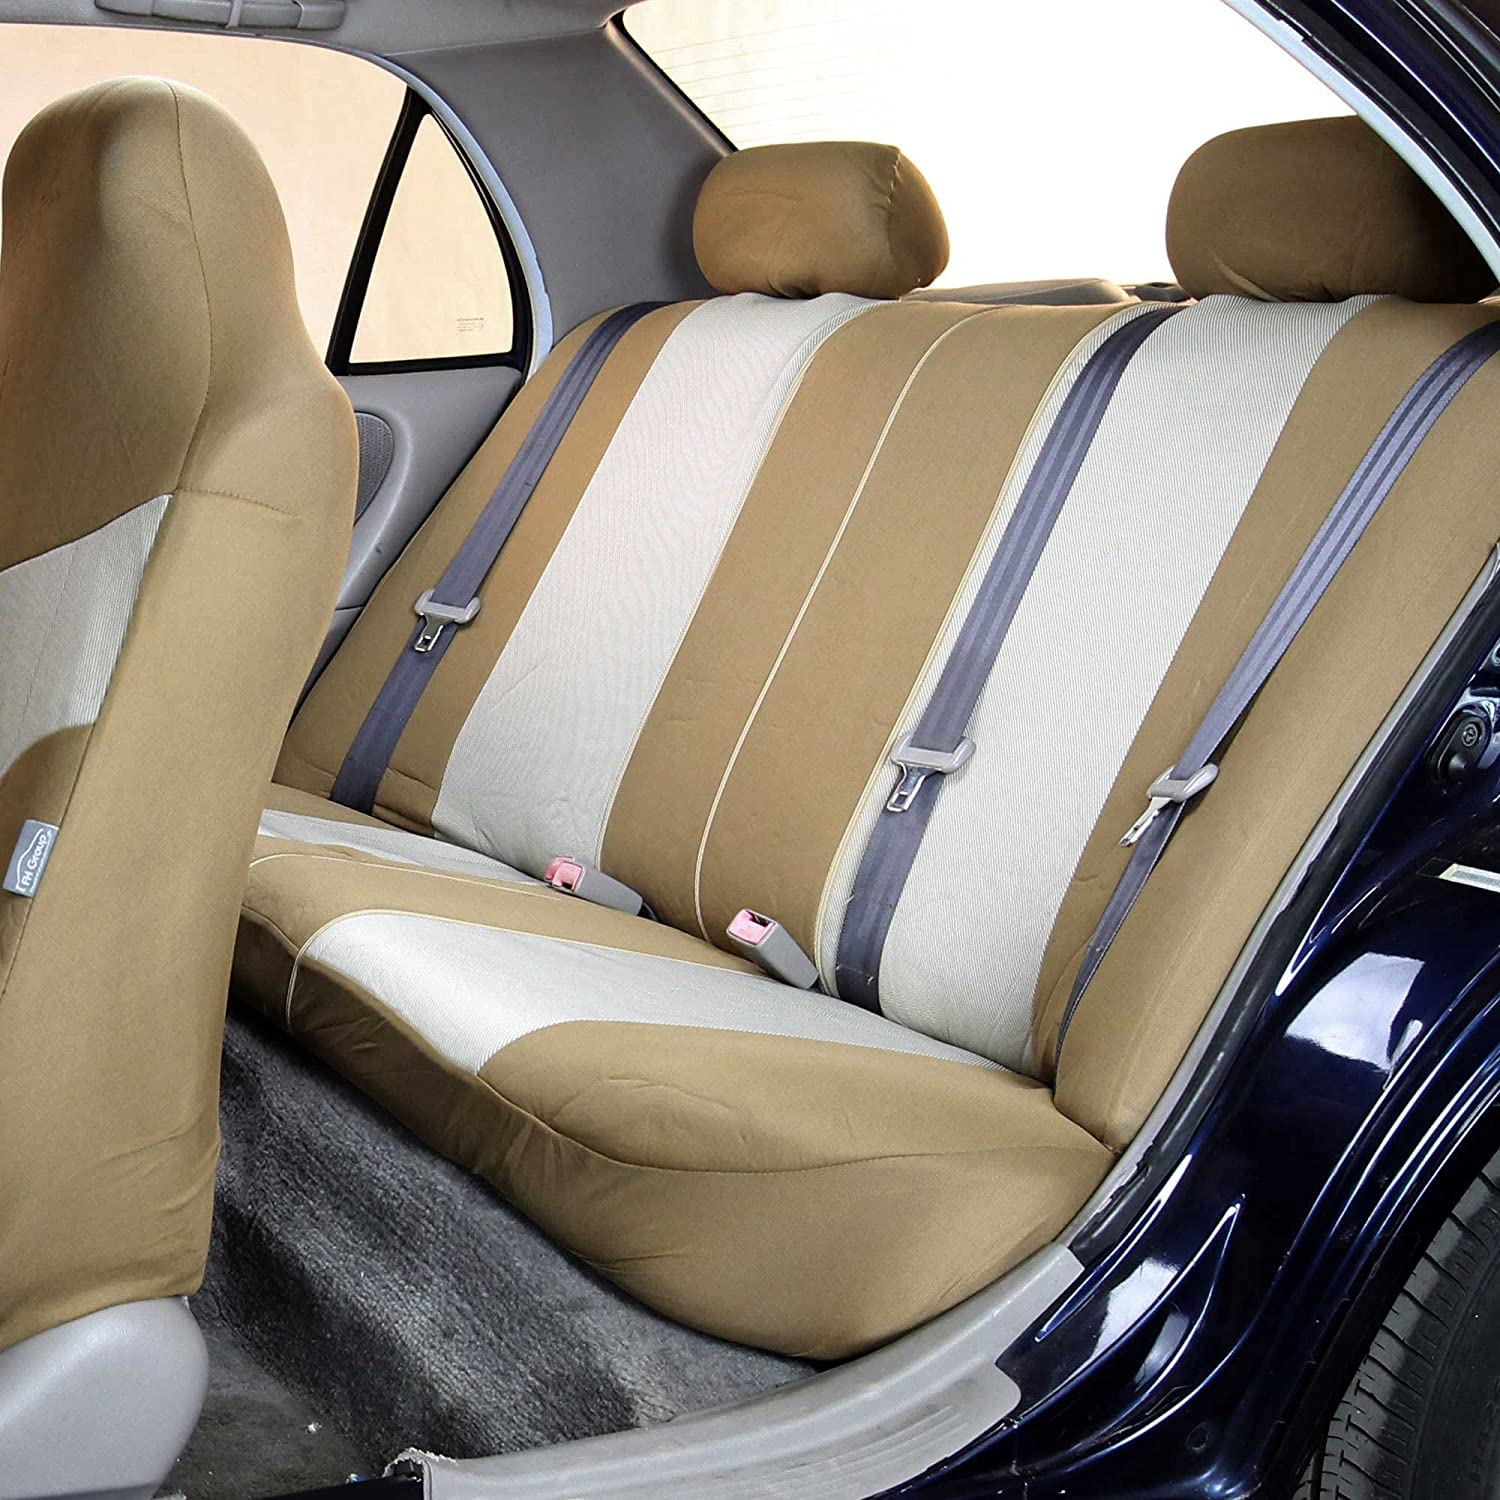 Details about  /2 Front Tan Beige Poly Fabric Car Seat Covers for Infiniti #16103